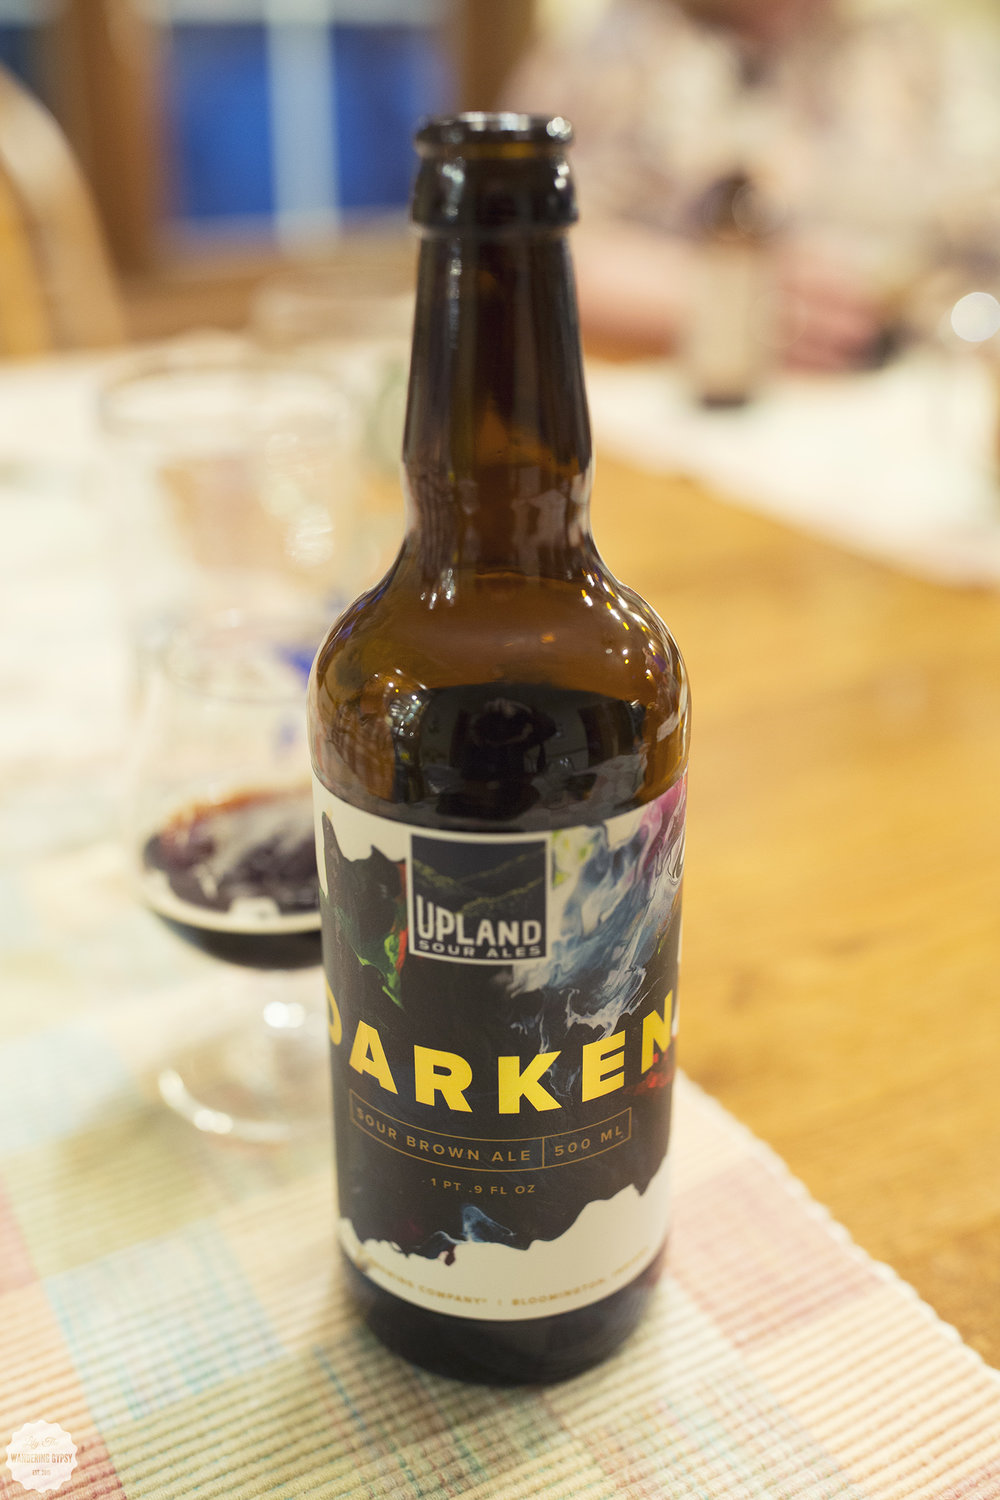 Darken - Sour Ber